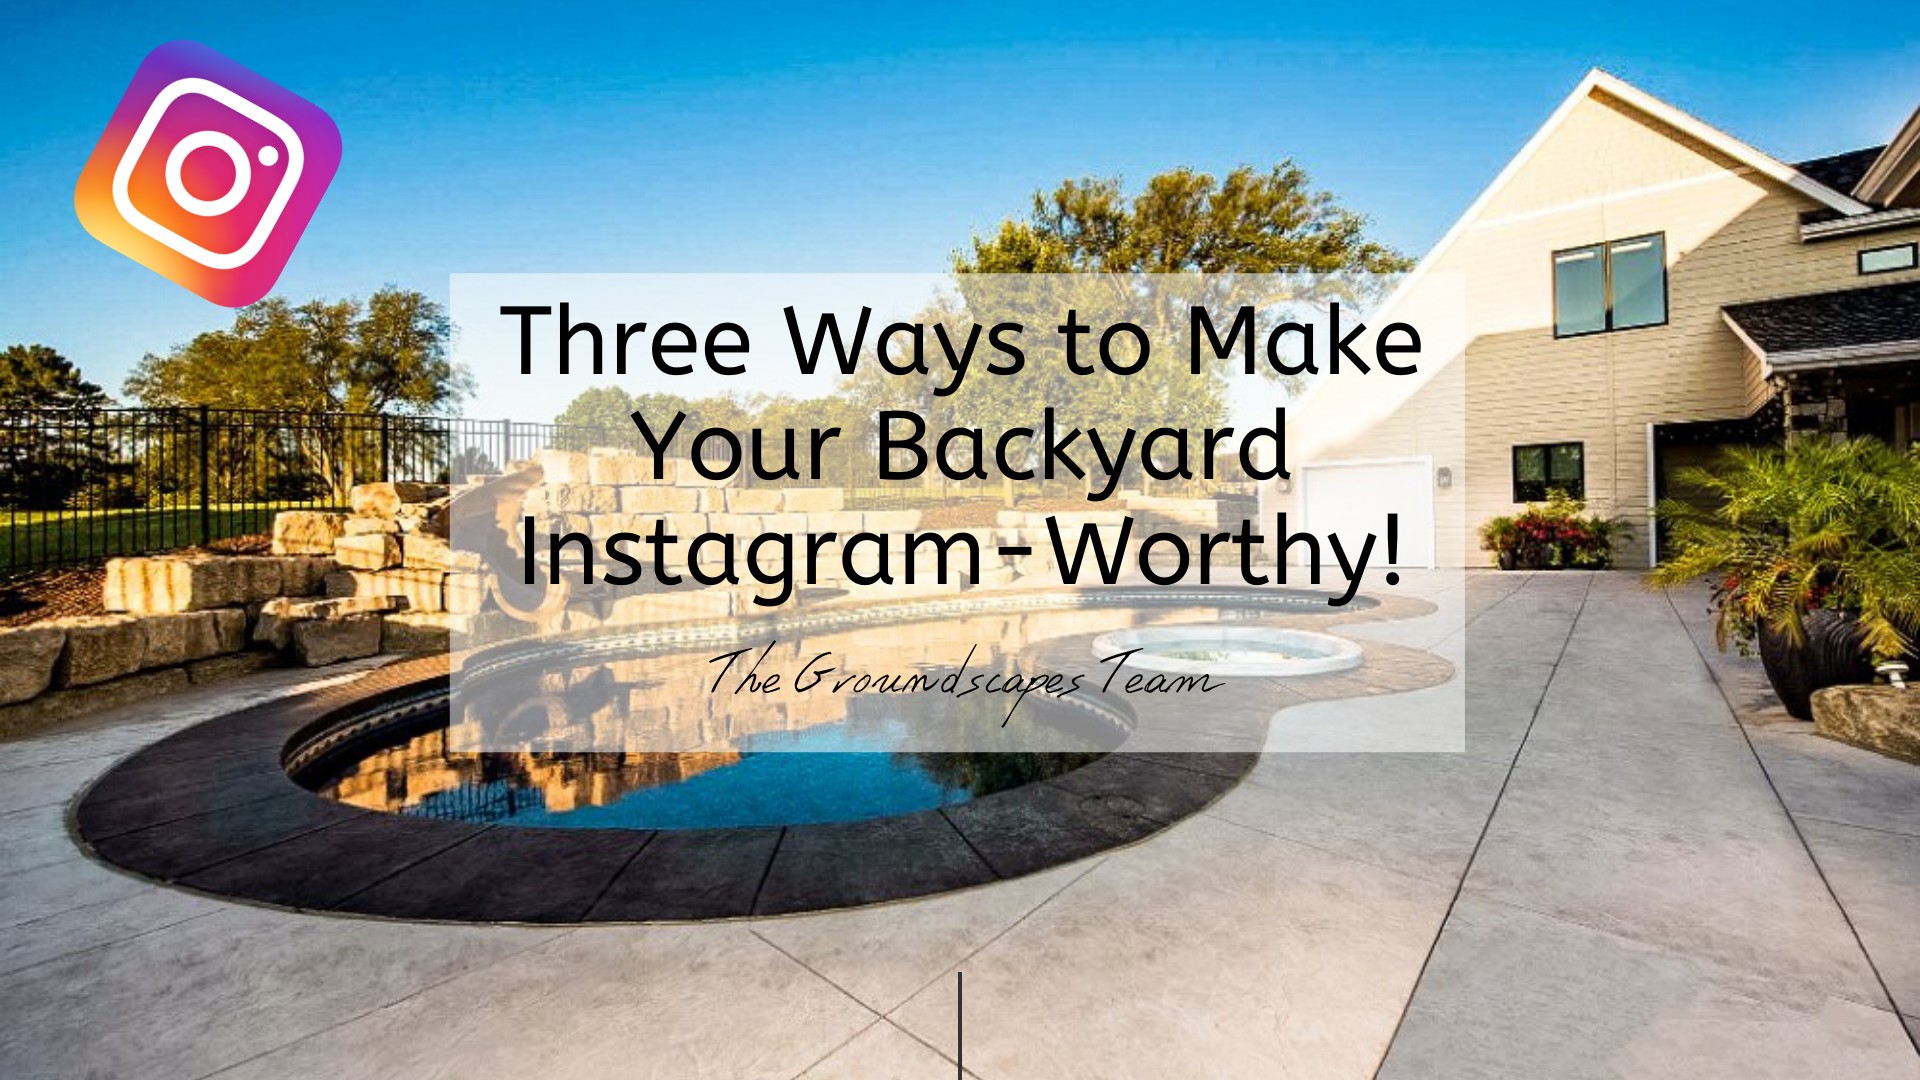 Three Ways to Make Your Backyard Instagram-Worthy!